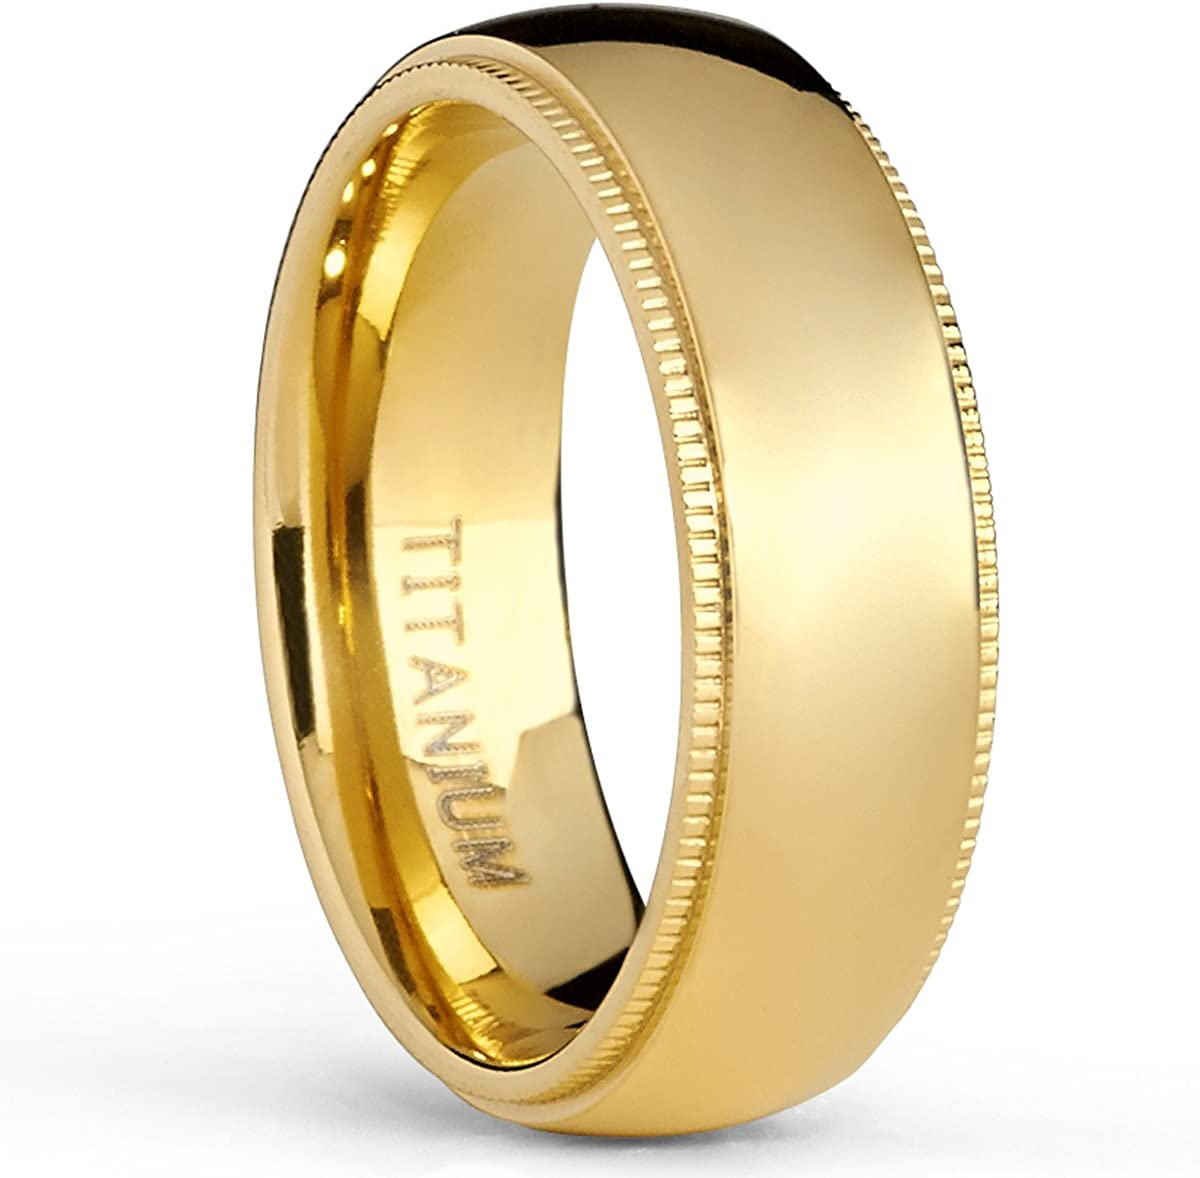 Metal Masters Co. Goldtone Titanium Wedding Band Engagement Ring, Milgrain Edges Comfort Fit, 7mm